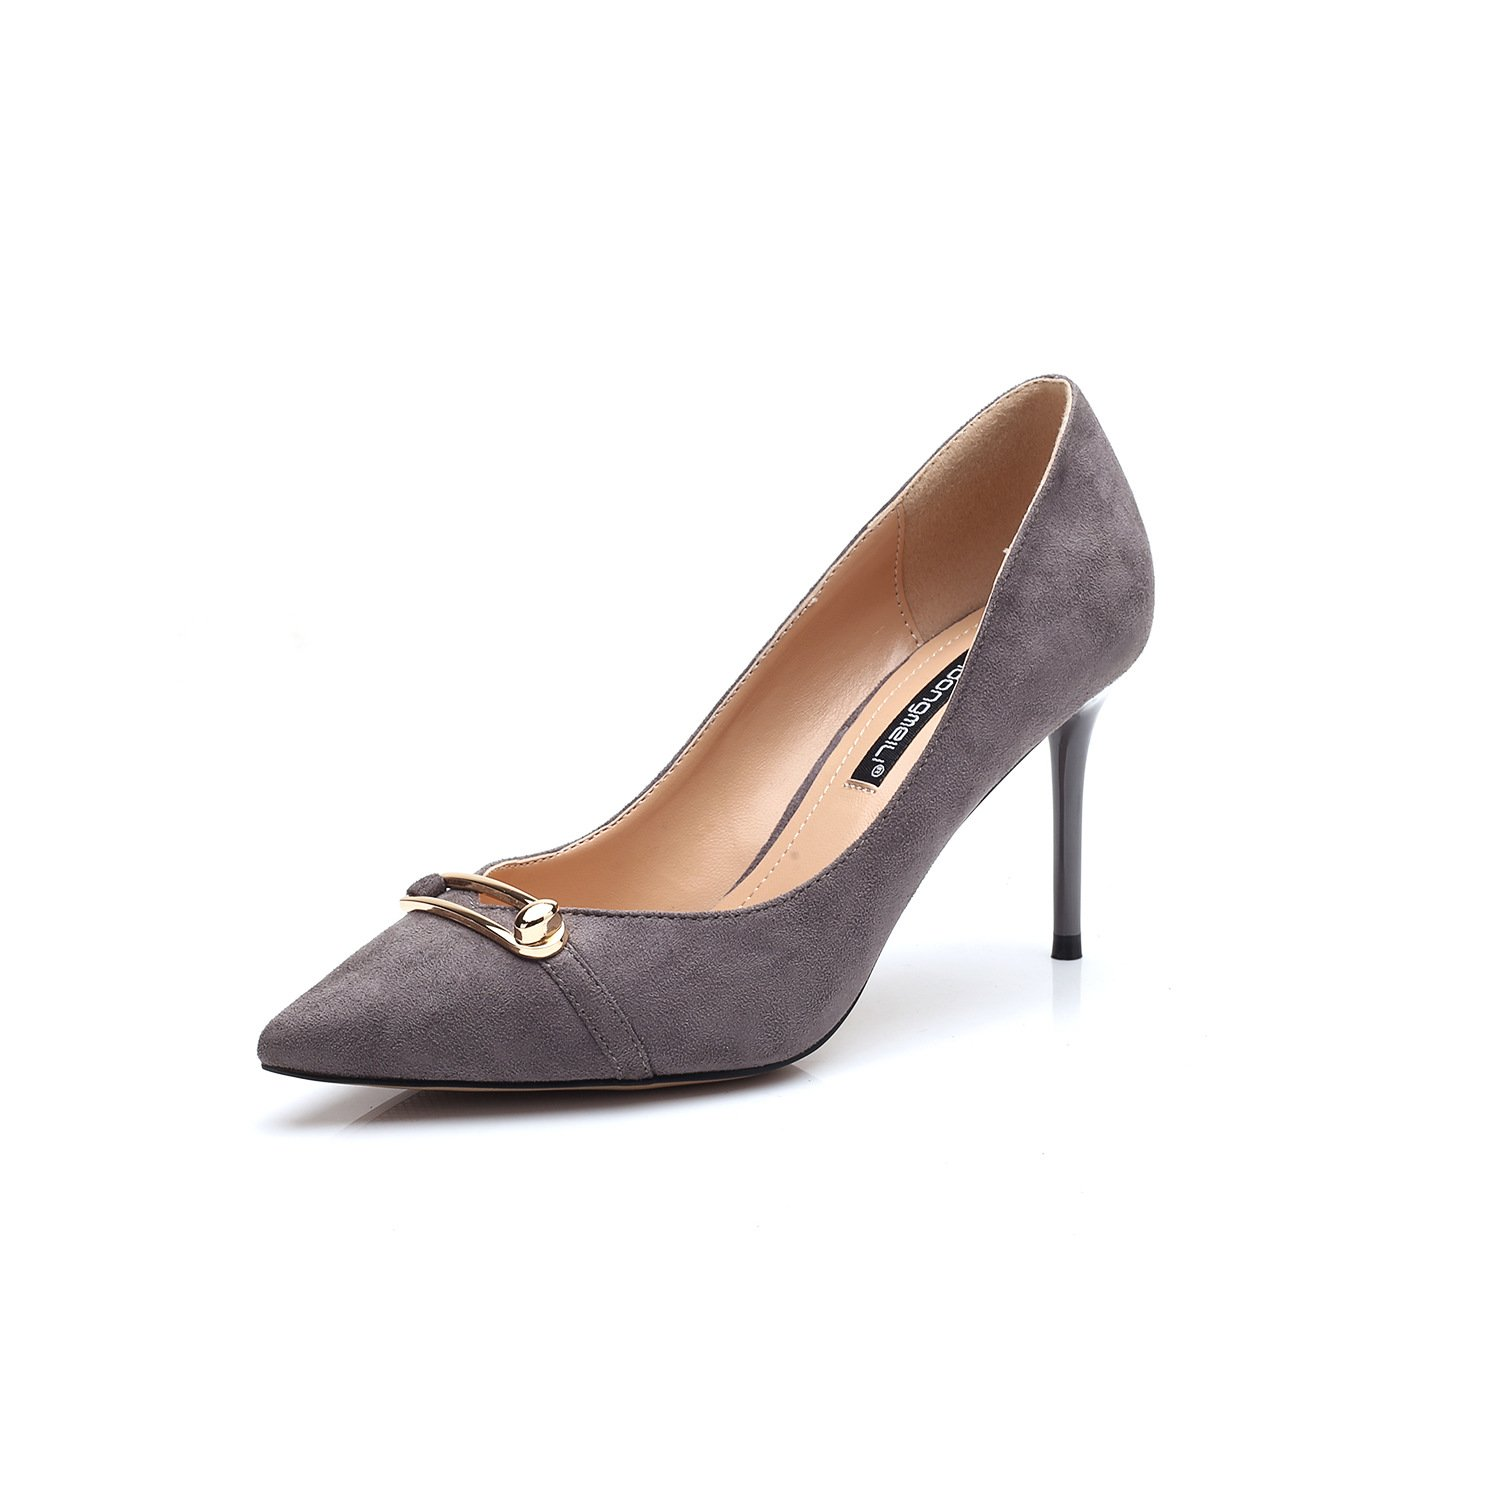 Tip of the high-heel shoes fine with v metal clip 8cm black, gray, 37